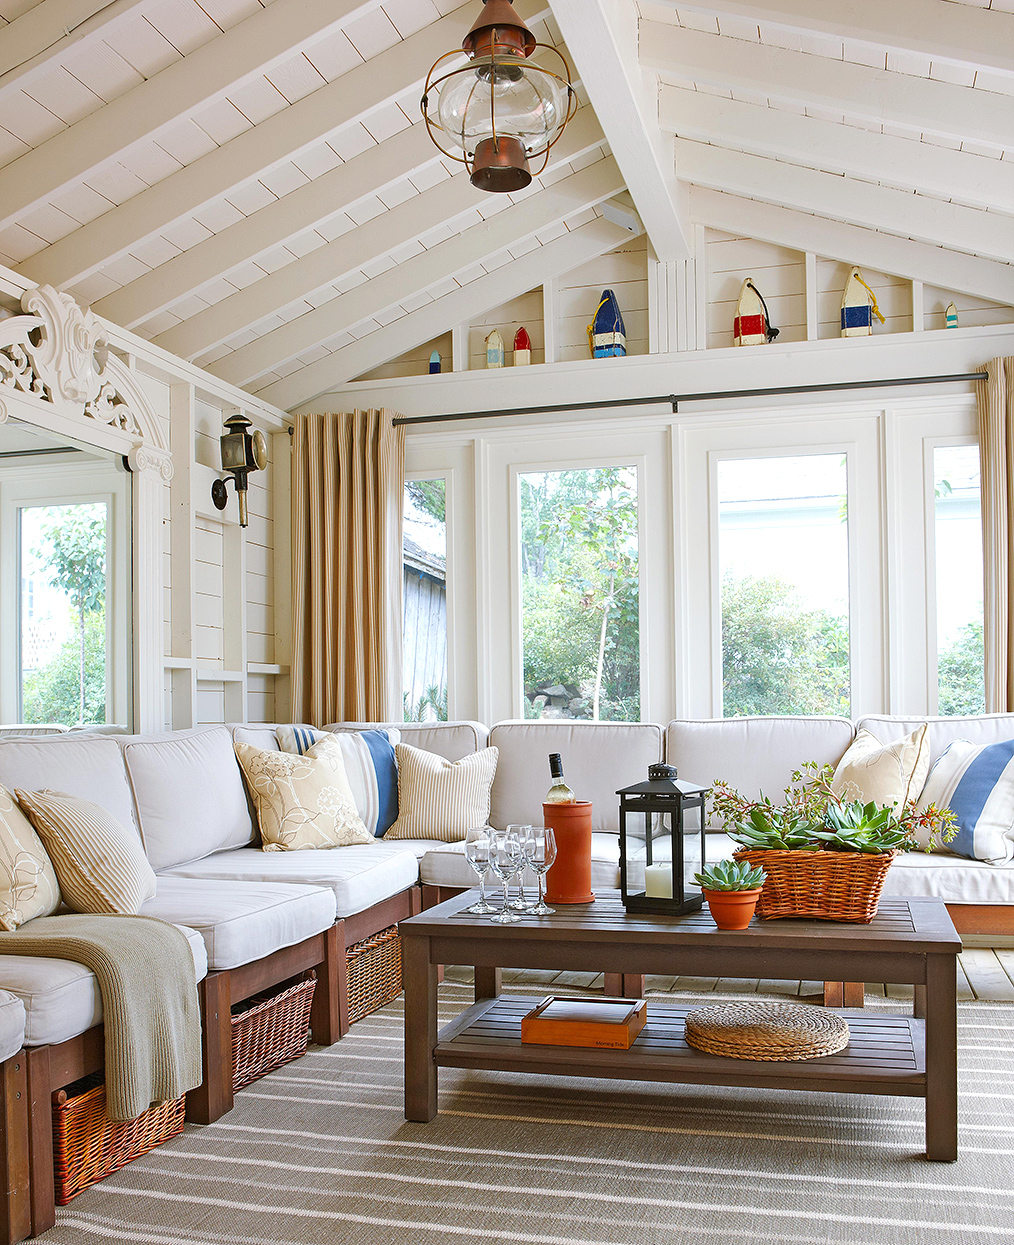 open, vaulted sunroom ceiling and large corner sectional